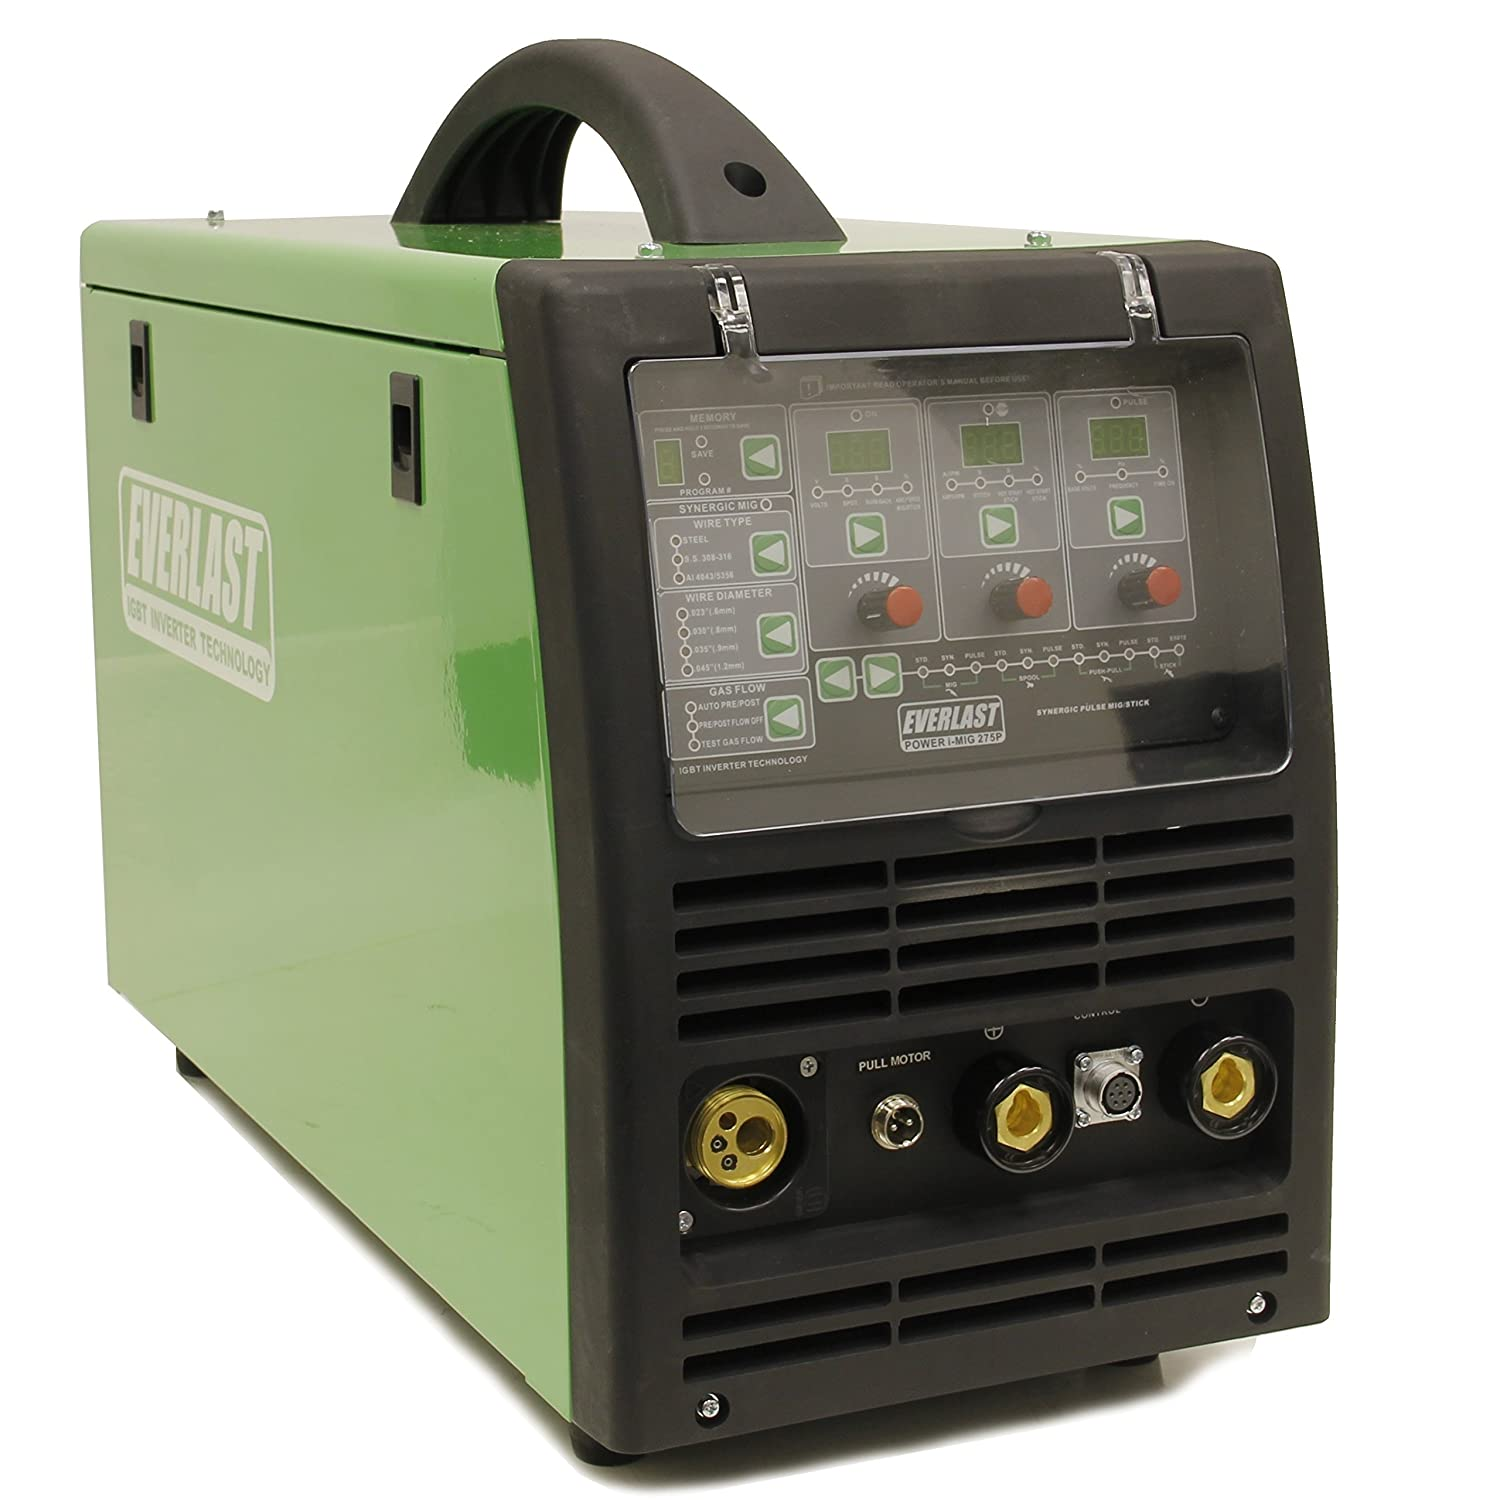 2017 PowerMIG275P 275 amp PULSE Synergic MIG STICK WELDER EVERLAST DIGITAL Everlast Power Equipment